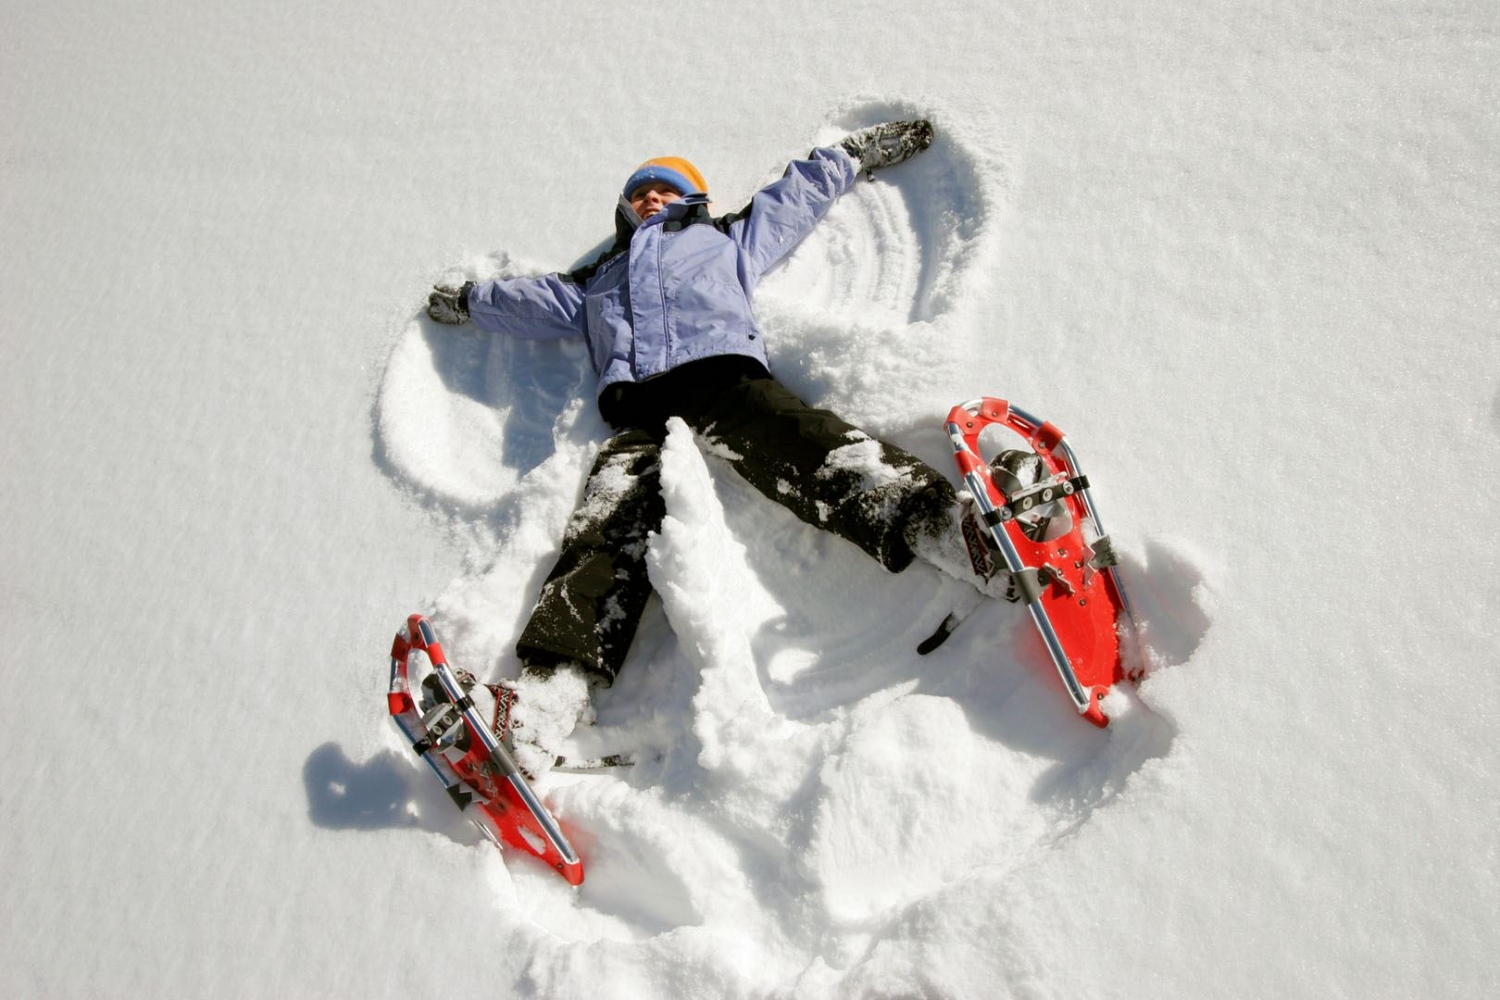 lady making snow angel in the snow